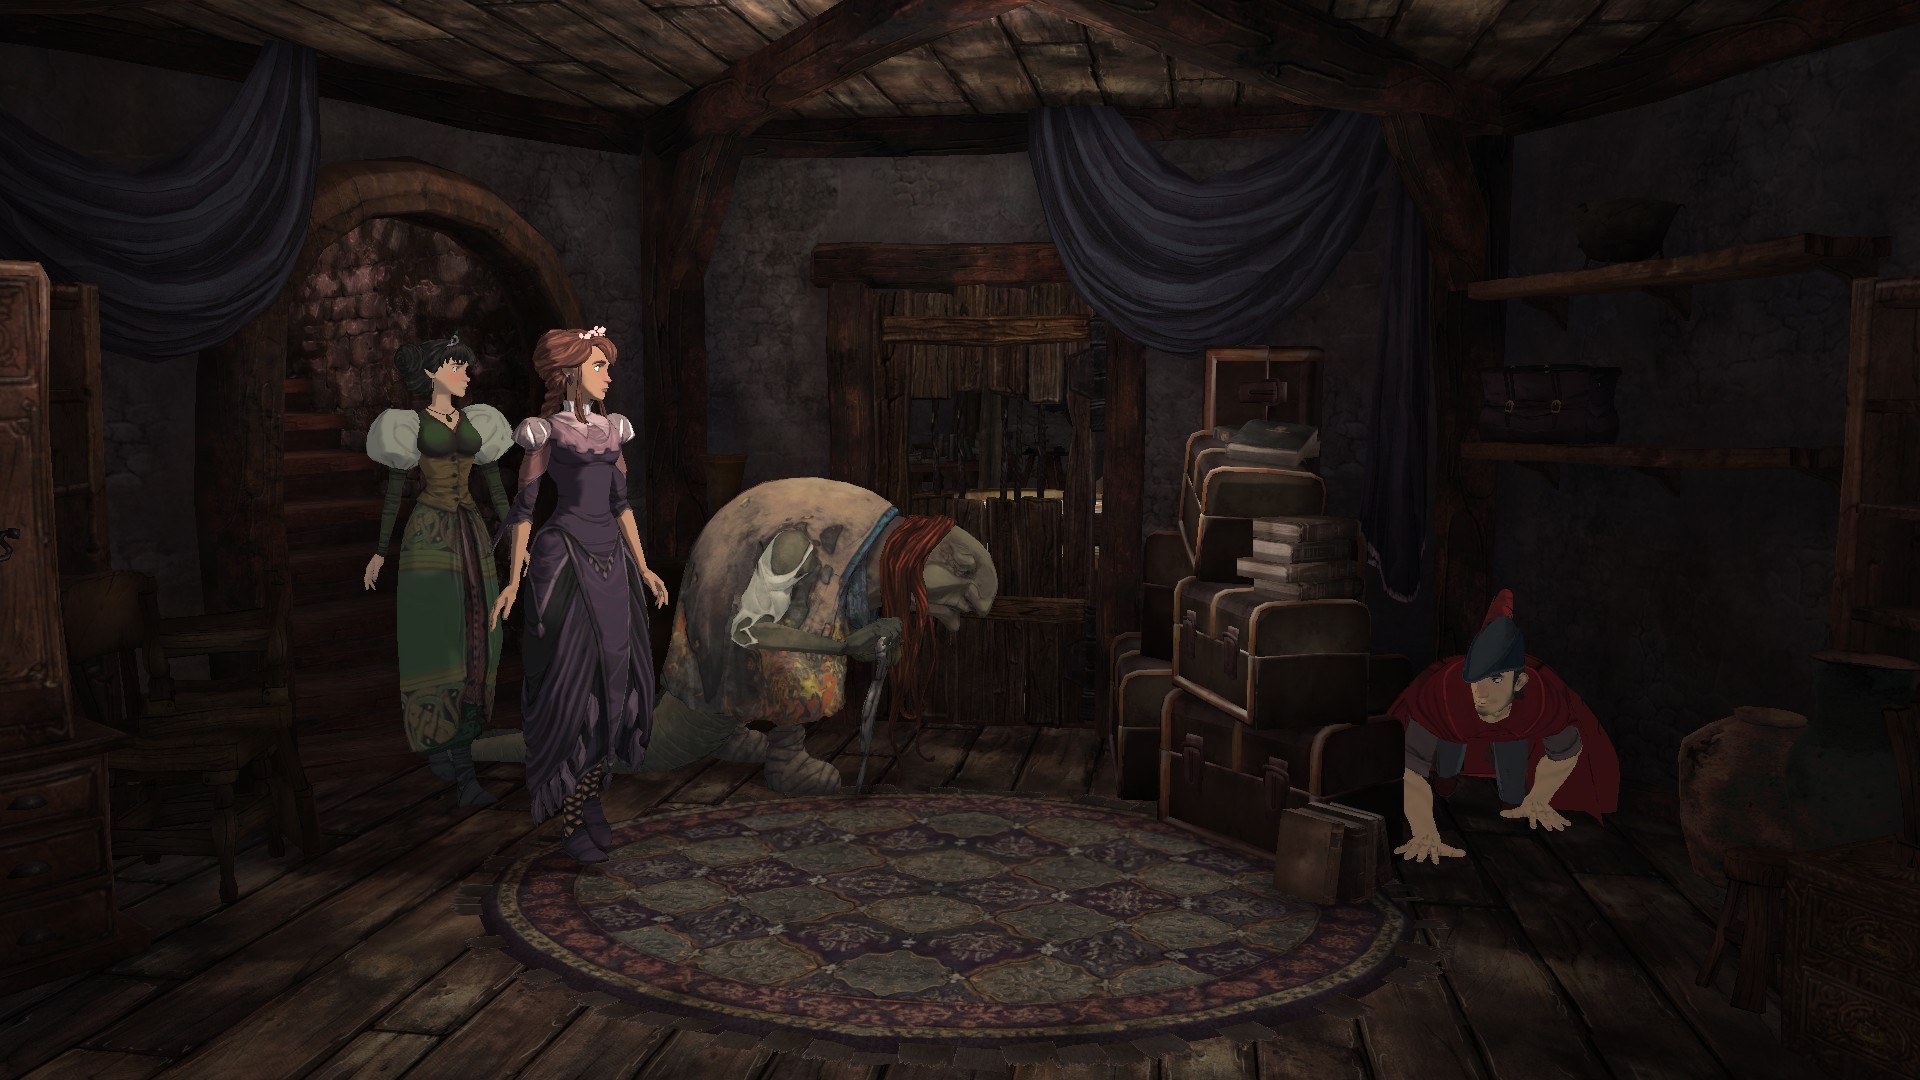 Third Episode Of King's Quest Now Available For Download